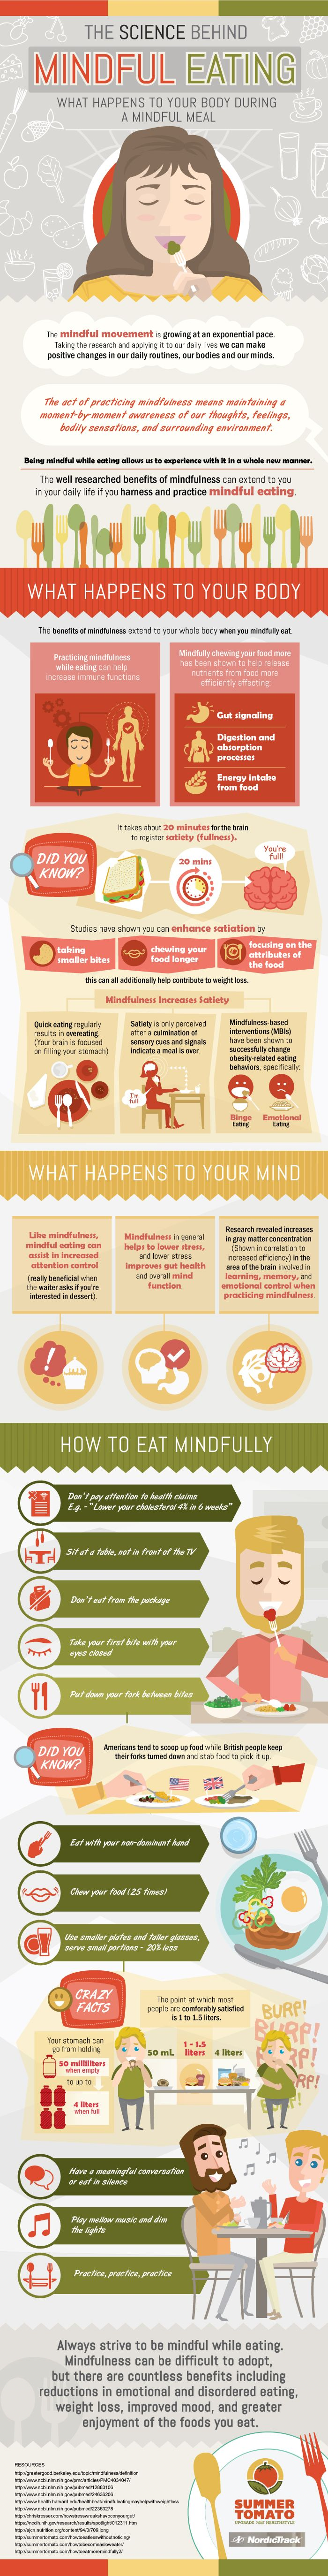 The Science Behind Mindful Eating: What Happens to Your Body During A... | Summer Tomato | Summer Tomato